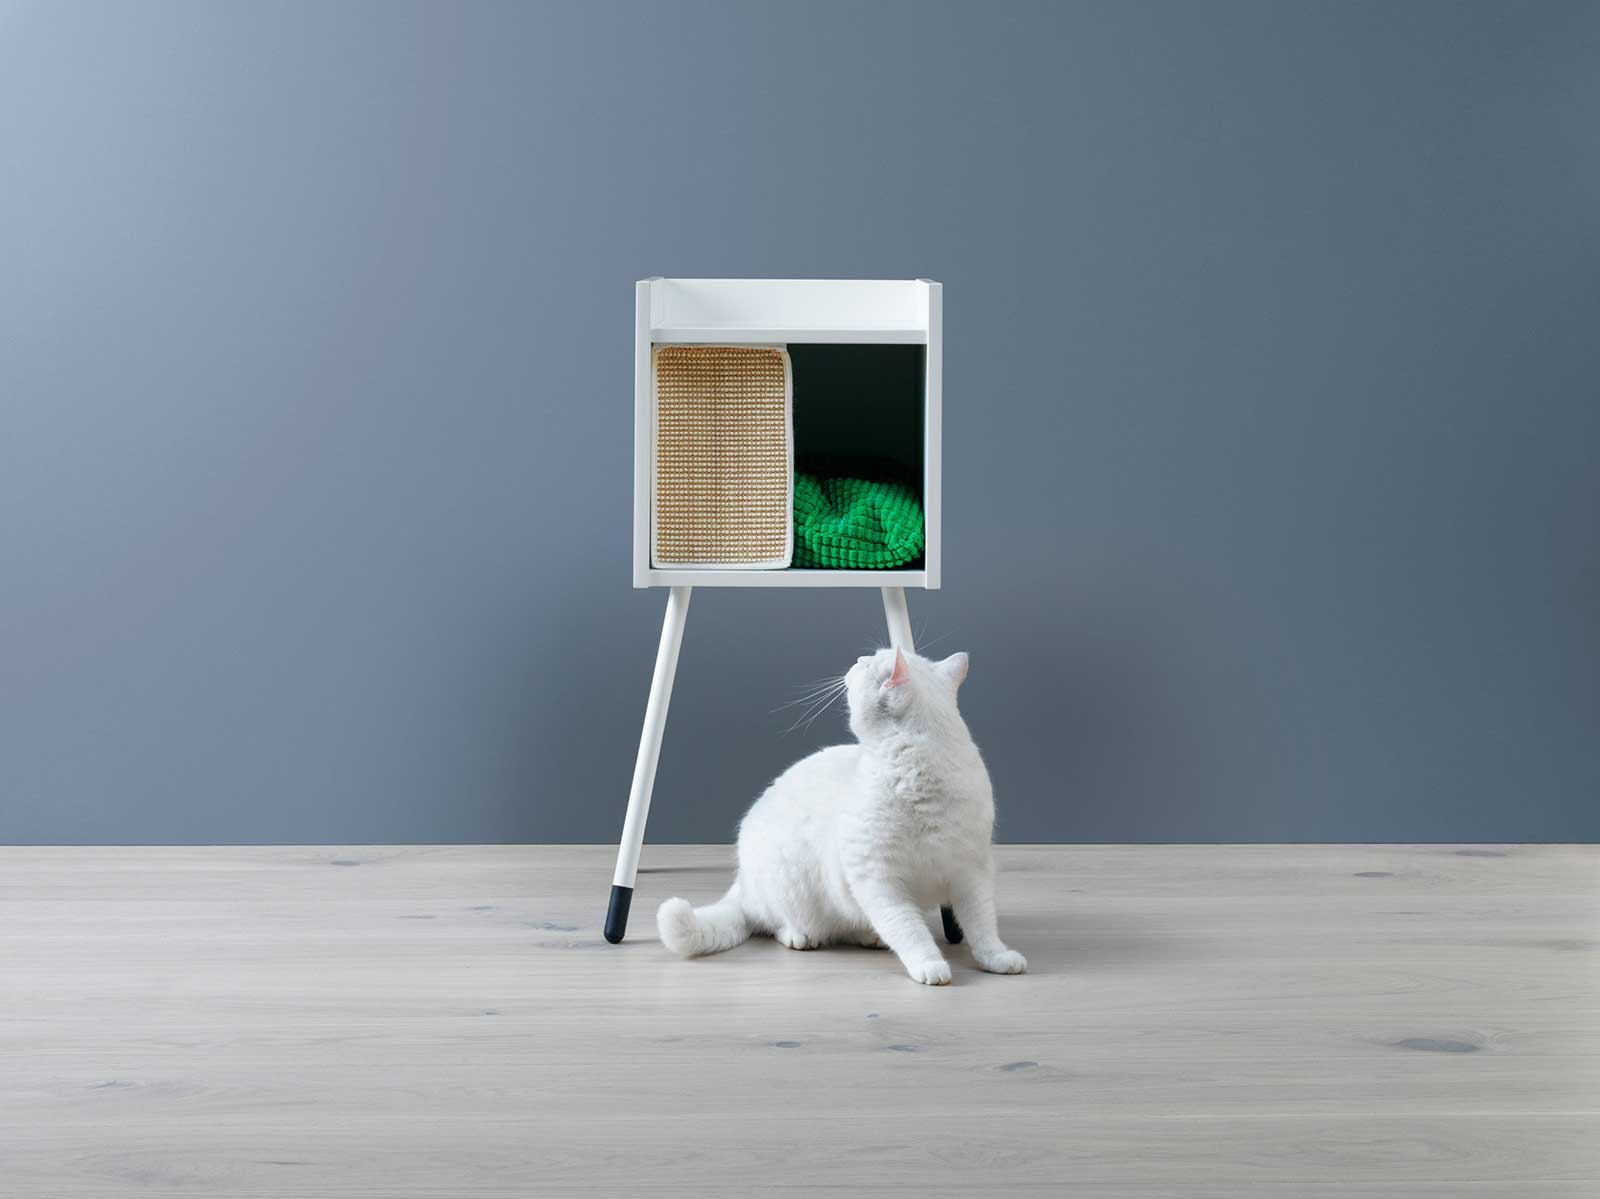 ikea lance une collection pour chiens et chats misc webzine. Black Bedroom Furniture Sets. Home Design Ideas